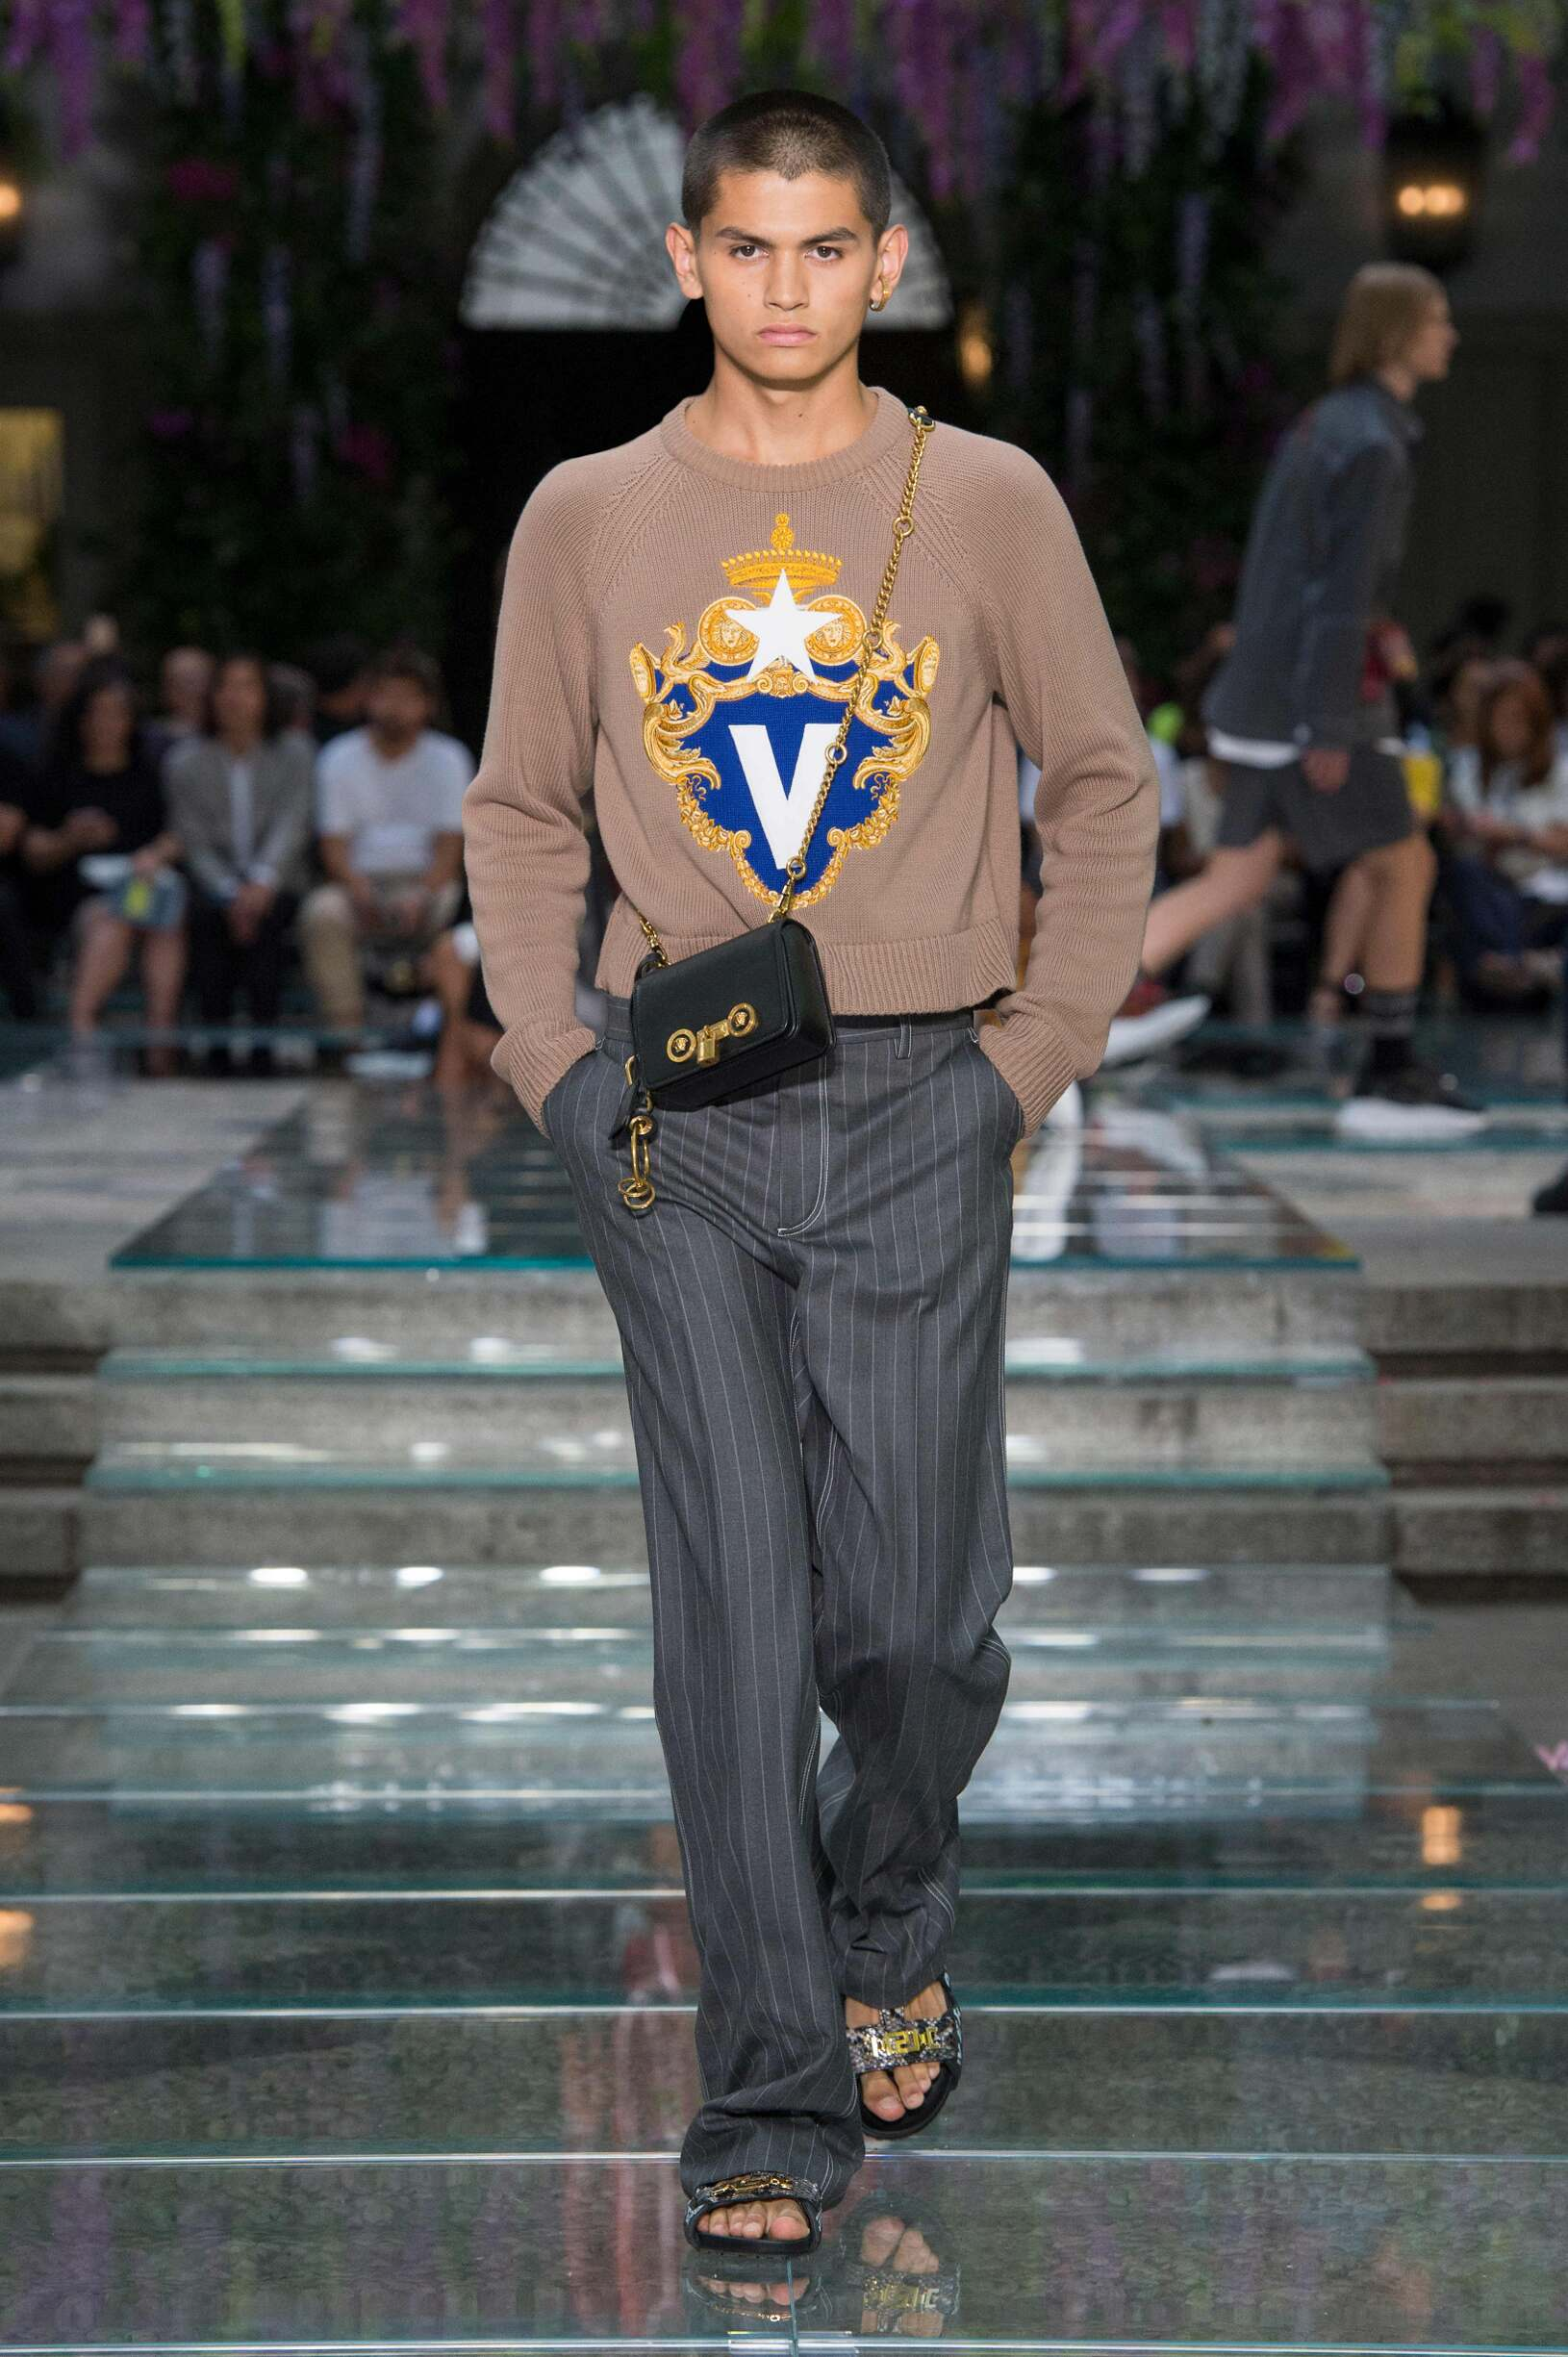 VERSACE SPRING SUMMER 2019 MEN'S COLLECTION